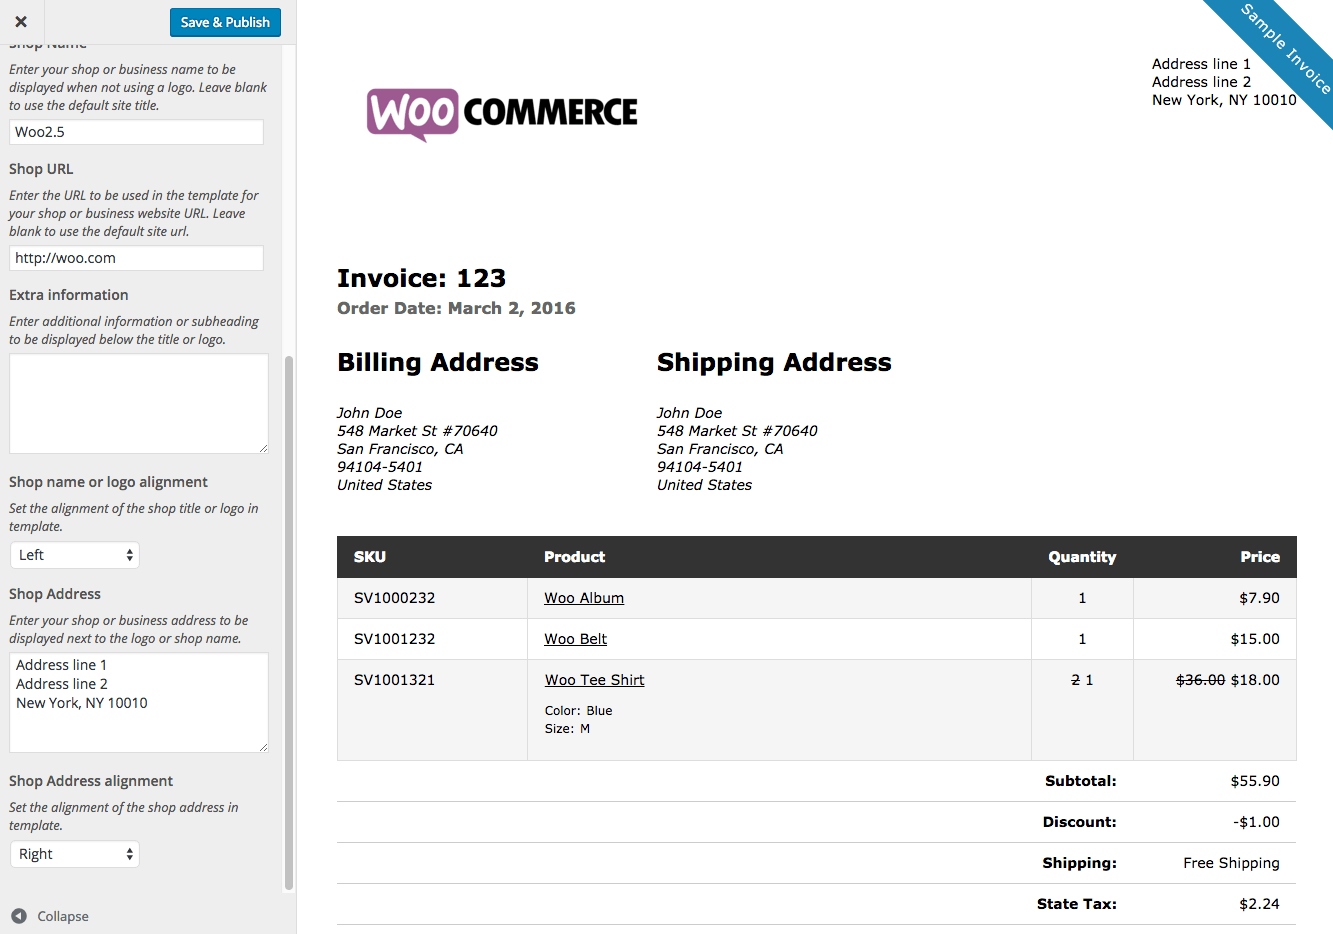 Usdgus  Inspiring Print Invoices Amp Packing Lists  Woocommerce With Glamorous Woocommerce Print Invoices  Packing Lists Customizer With Comely Bill Payment Receipt Format Also Receipts Scanner Reviews In Addition Lic Payment Receipts Online And Kraft Receipts As Well As What Is Payment Receipt Additionally General Receipt Form From Woocommercecom With Usdgus  Glamorous Print Invoices Amp Packing Lists  Woocommerce With Comely Woocommerce Print Invoices  Packing Lists Customizer And Inspiring Bill Payment Receipt Format Also Receipts Scanner Reviews In Addition Lic Payment Receipts Online From Woocommercecom